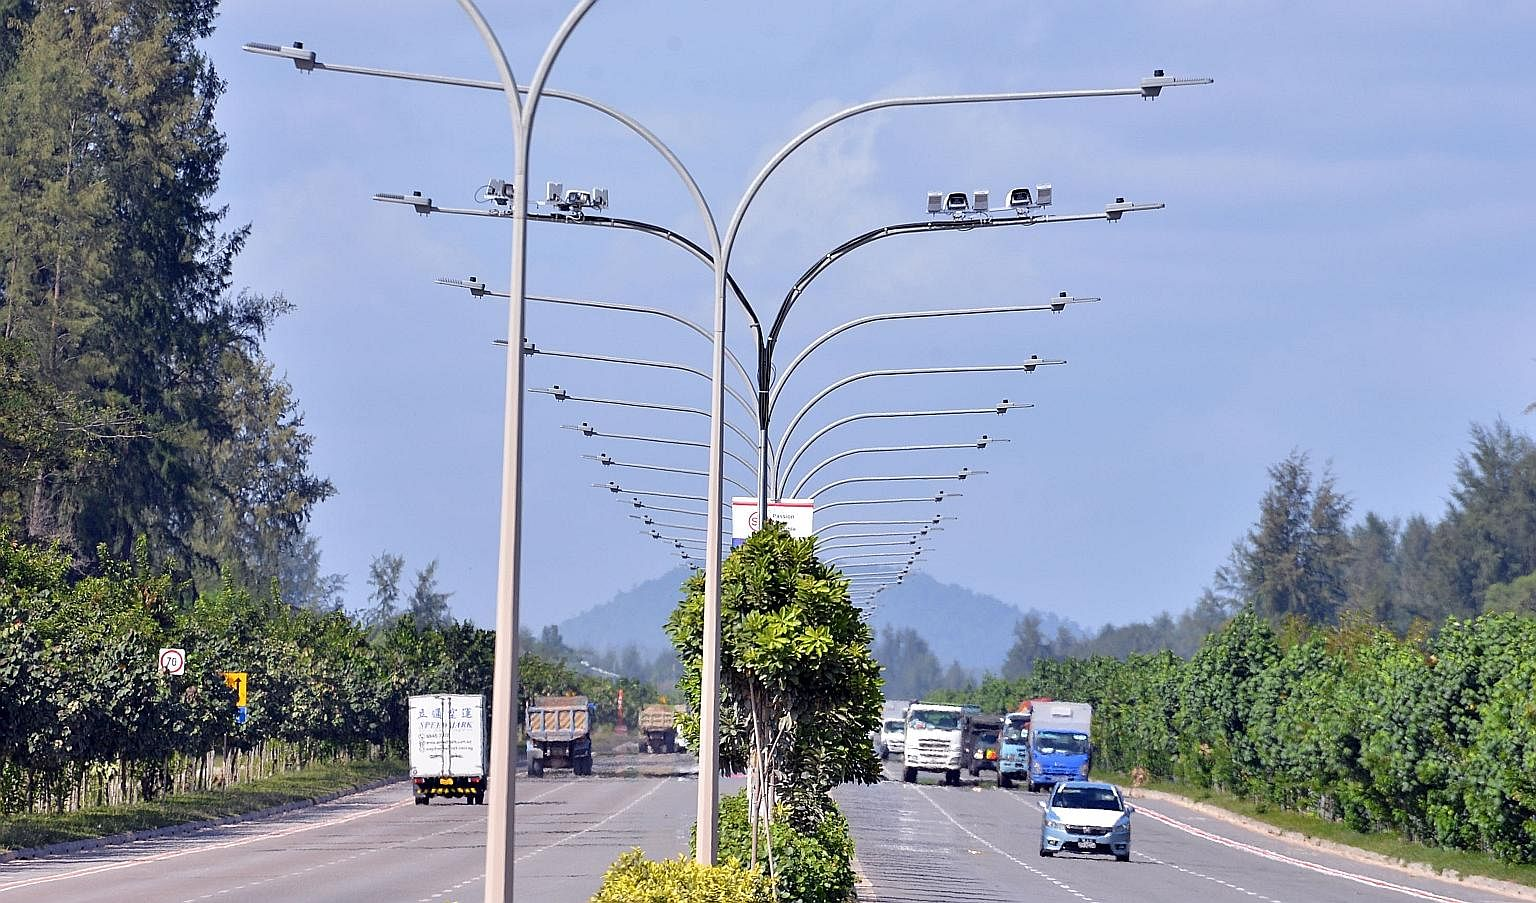 The average speed camera system in Tanah Merah Coast Road (left and above) is likely to be activated in the next few months. It is the latest initiative by the authorities to curb speeding and improve overall road safety.